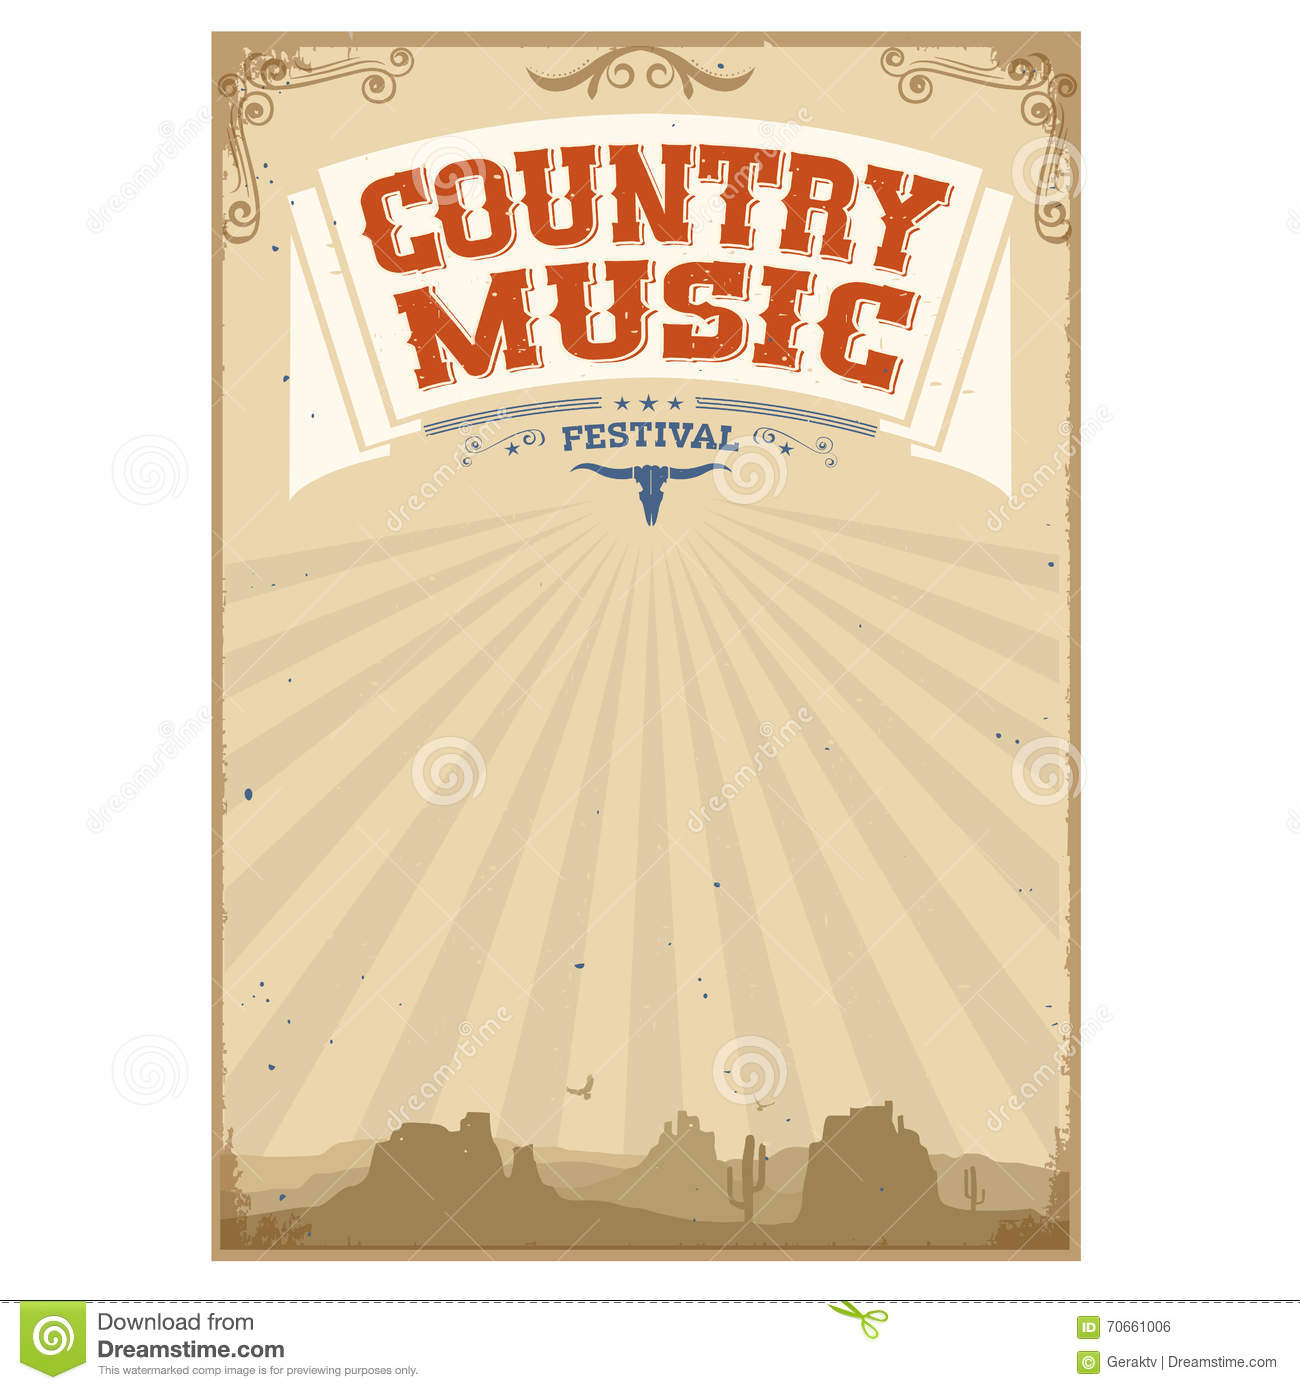 Country Music Wallpaper: Country Music Festival Background With American Landscape